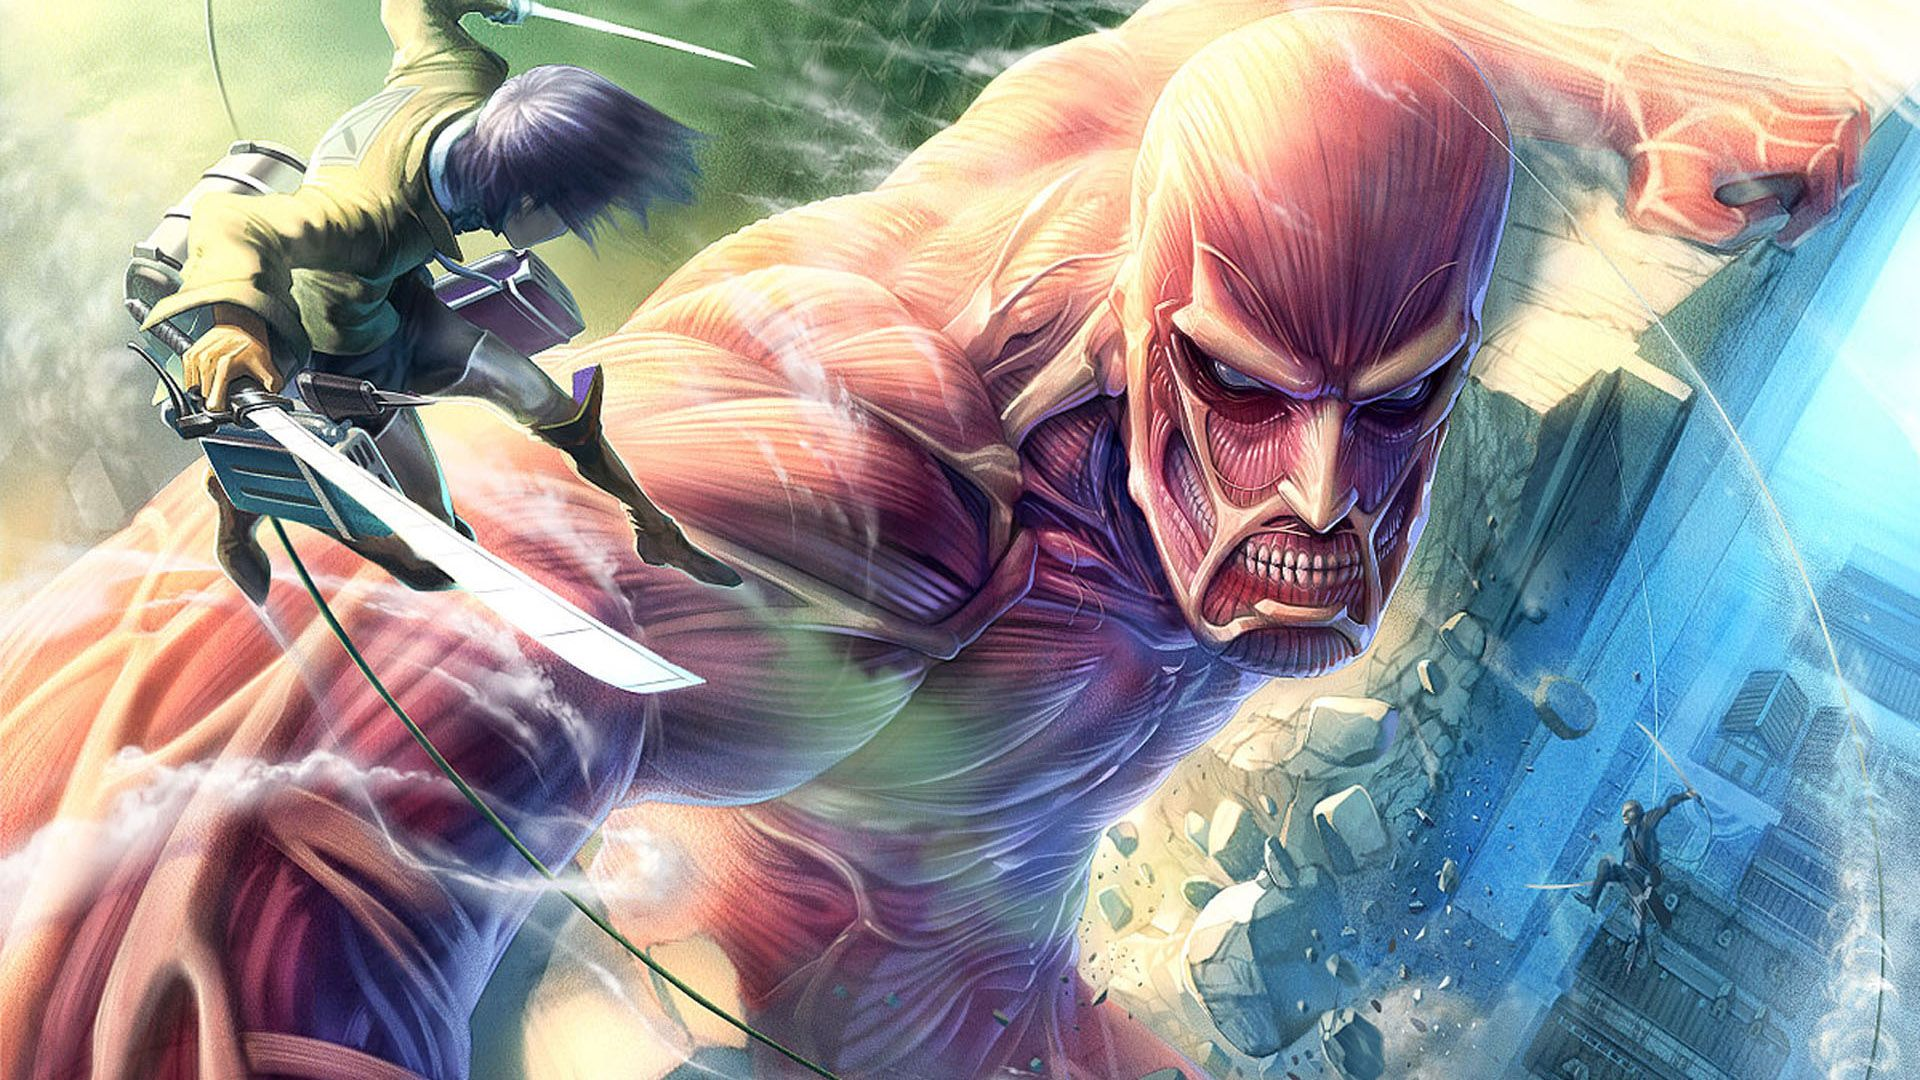 Eren Jaeger vs Colossal Titan, Eren battling a Colossal